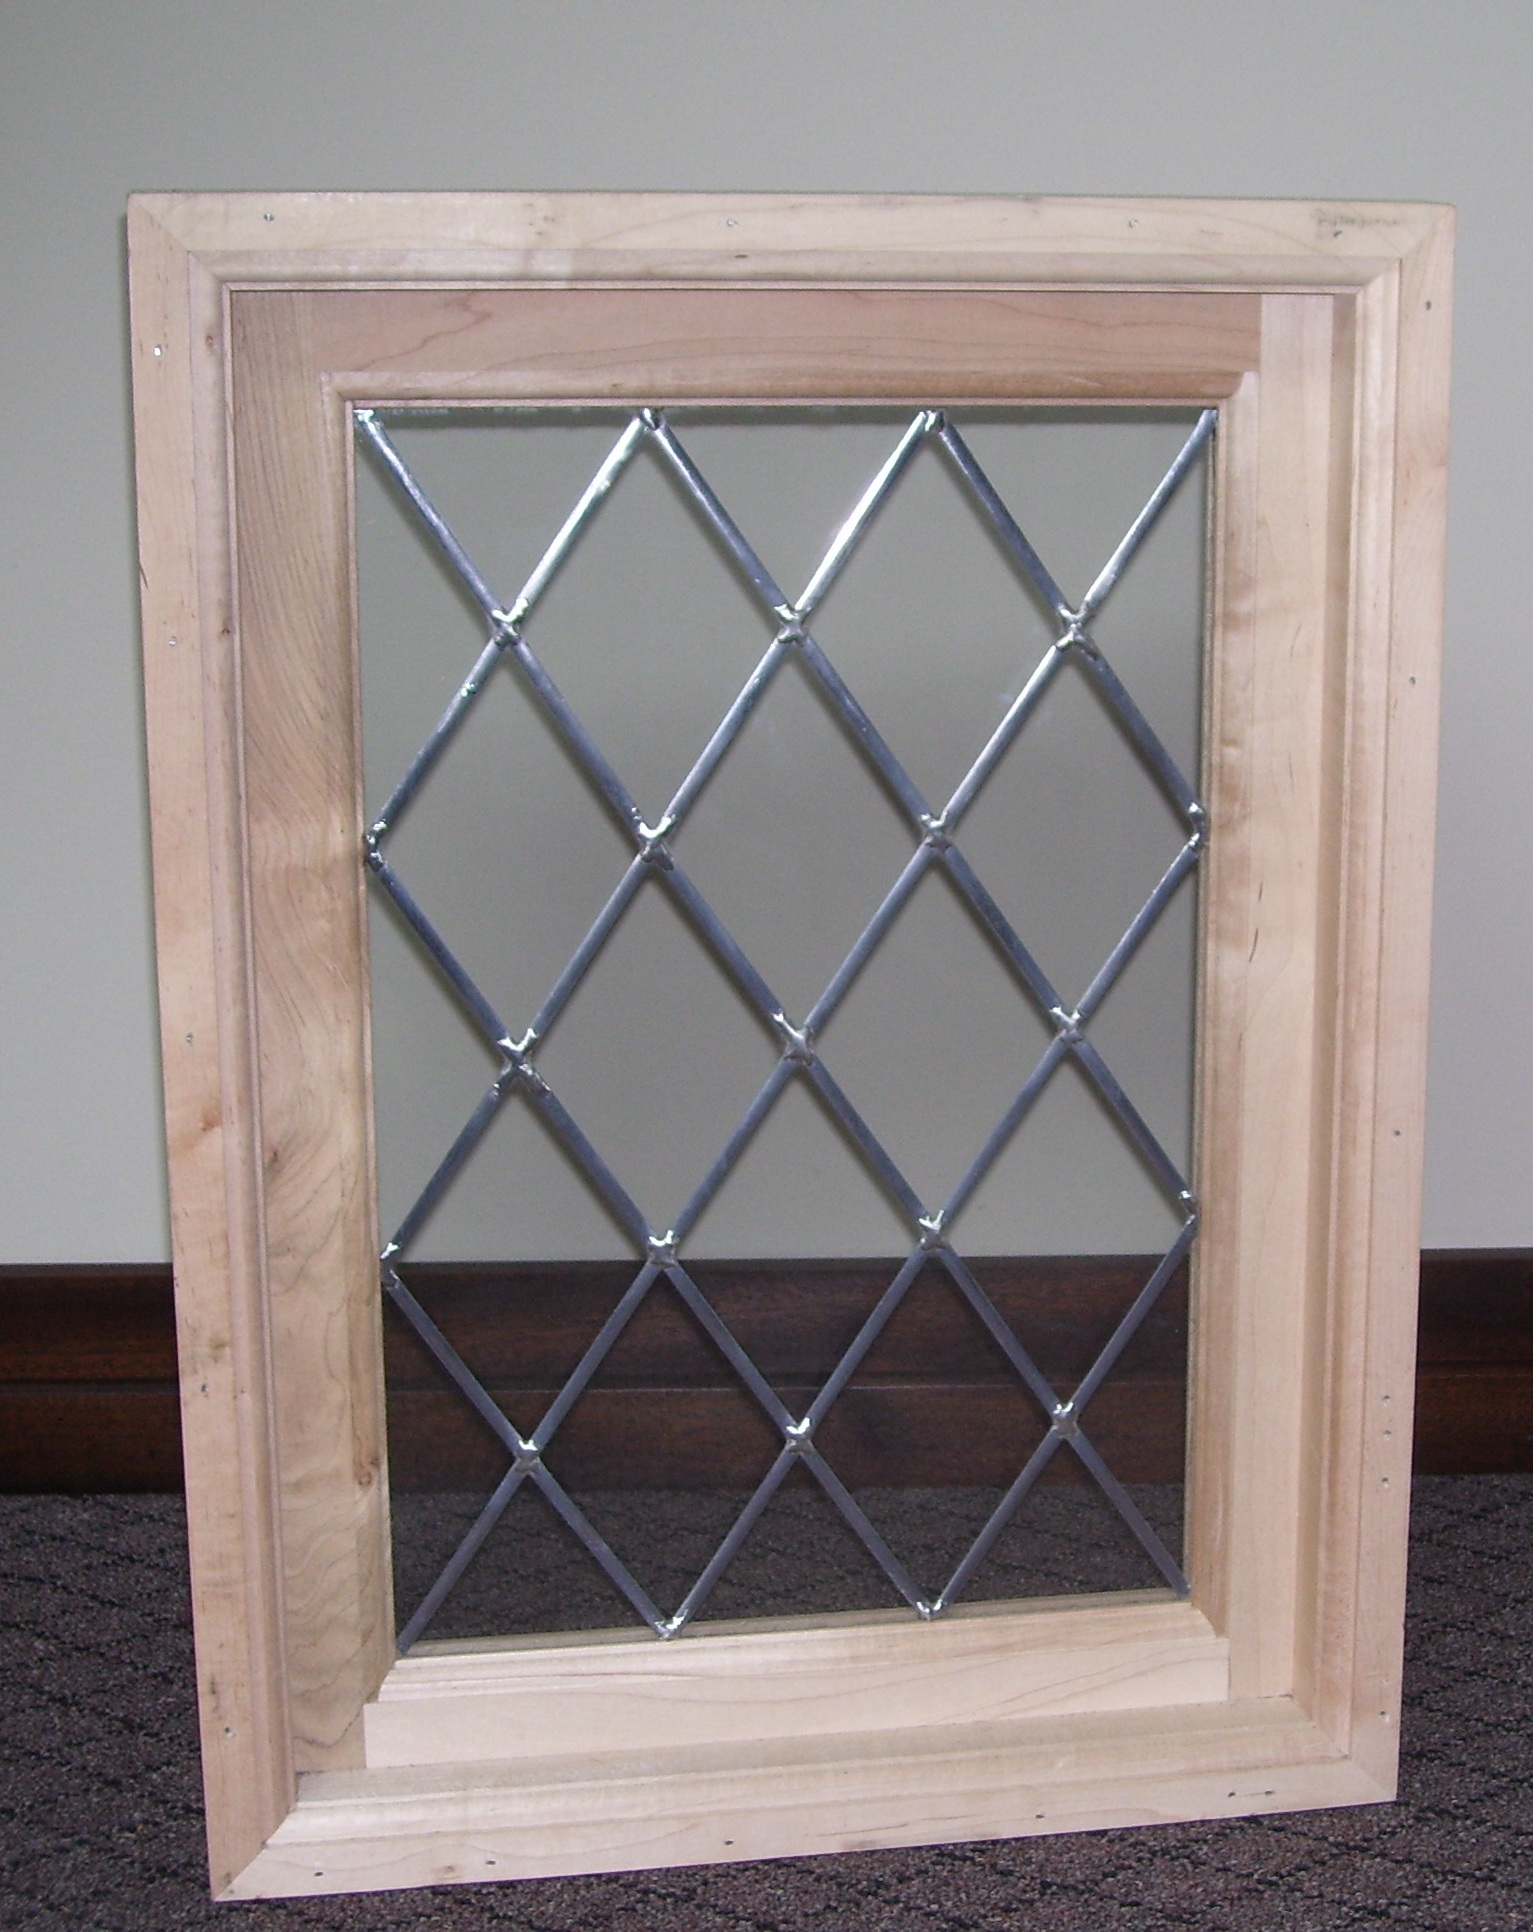 woodenwindow_stickonlead